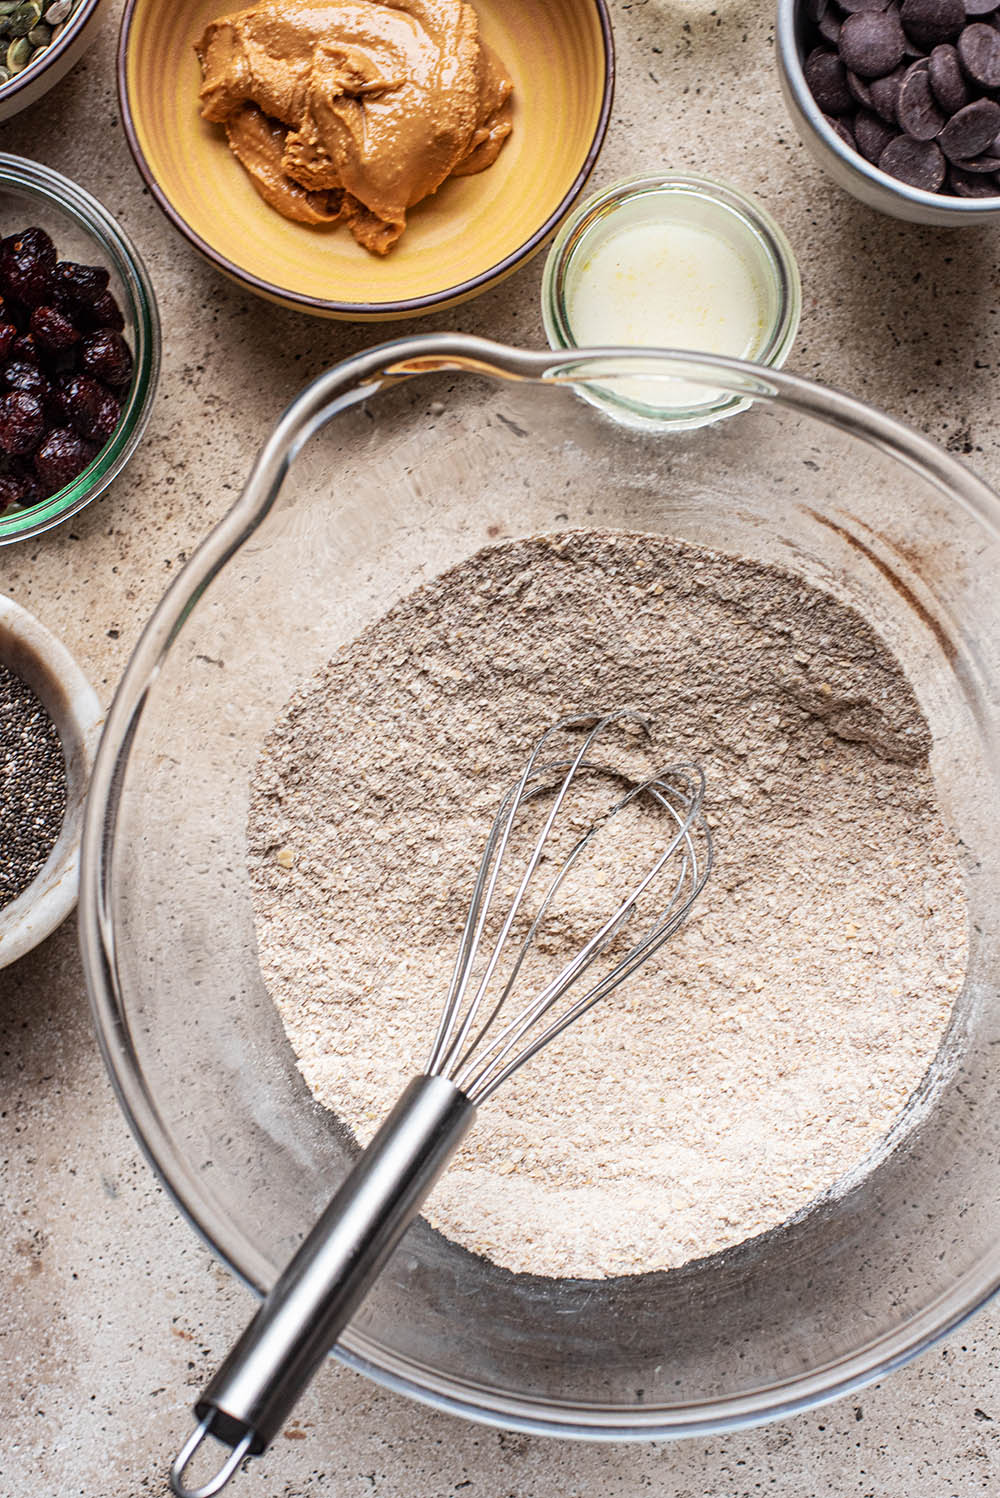 Dry cookie ingredients whisked together in a large bowl.